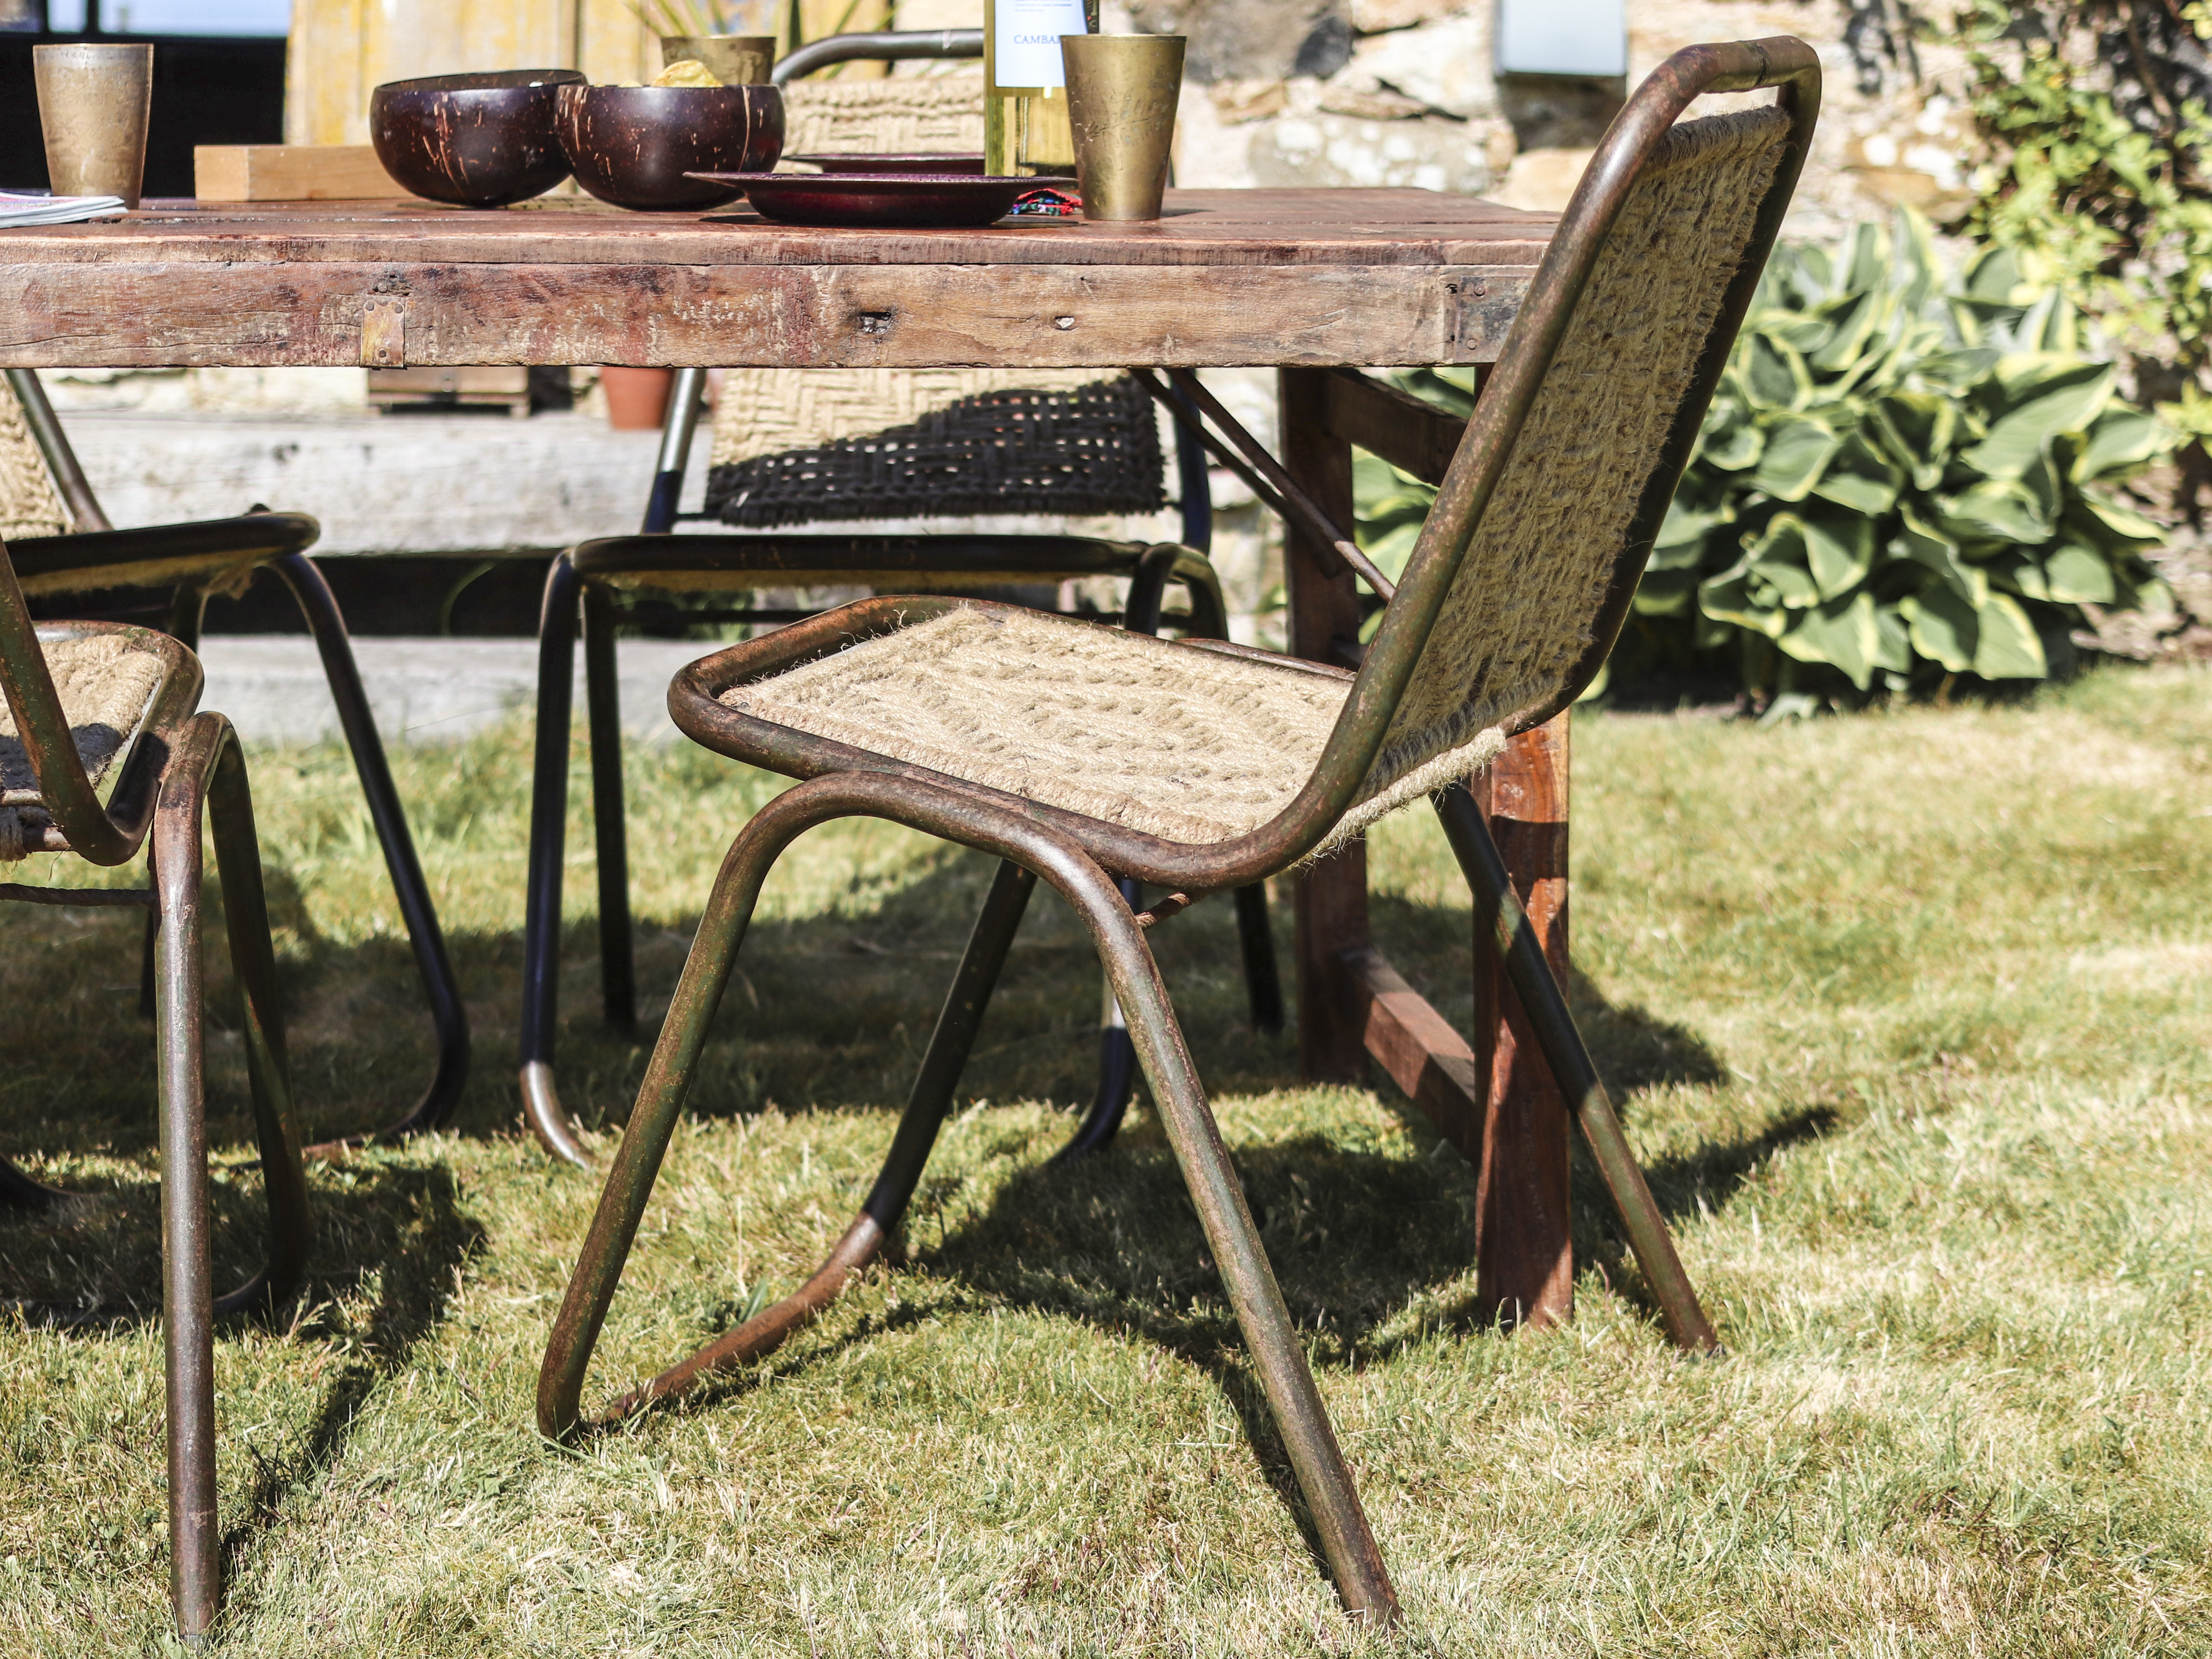 Bring some texture outside with these beautiful woven chairs